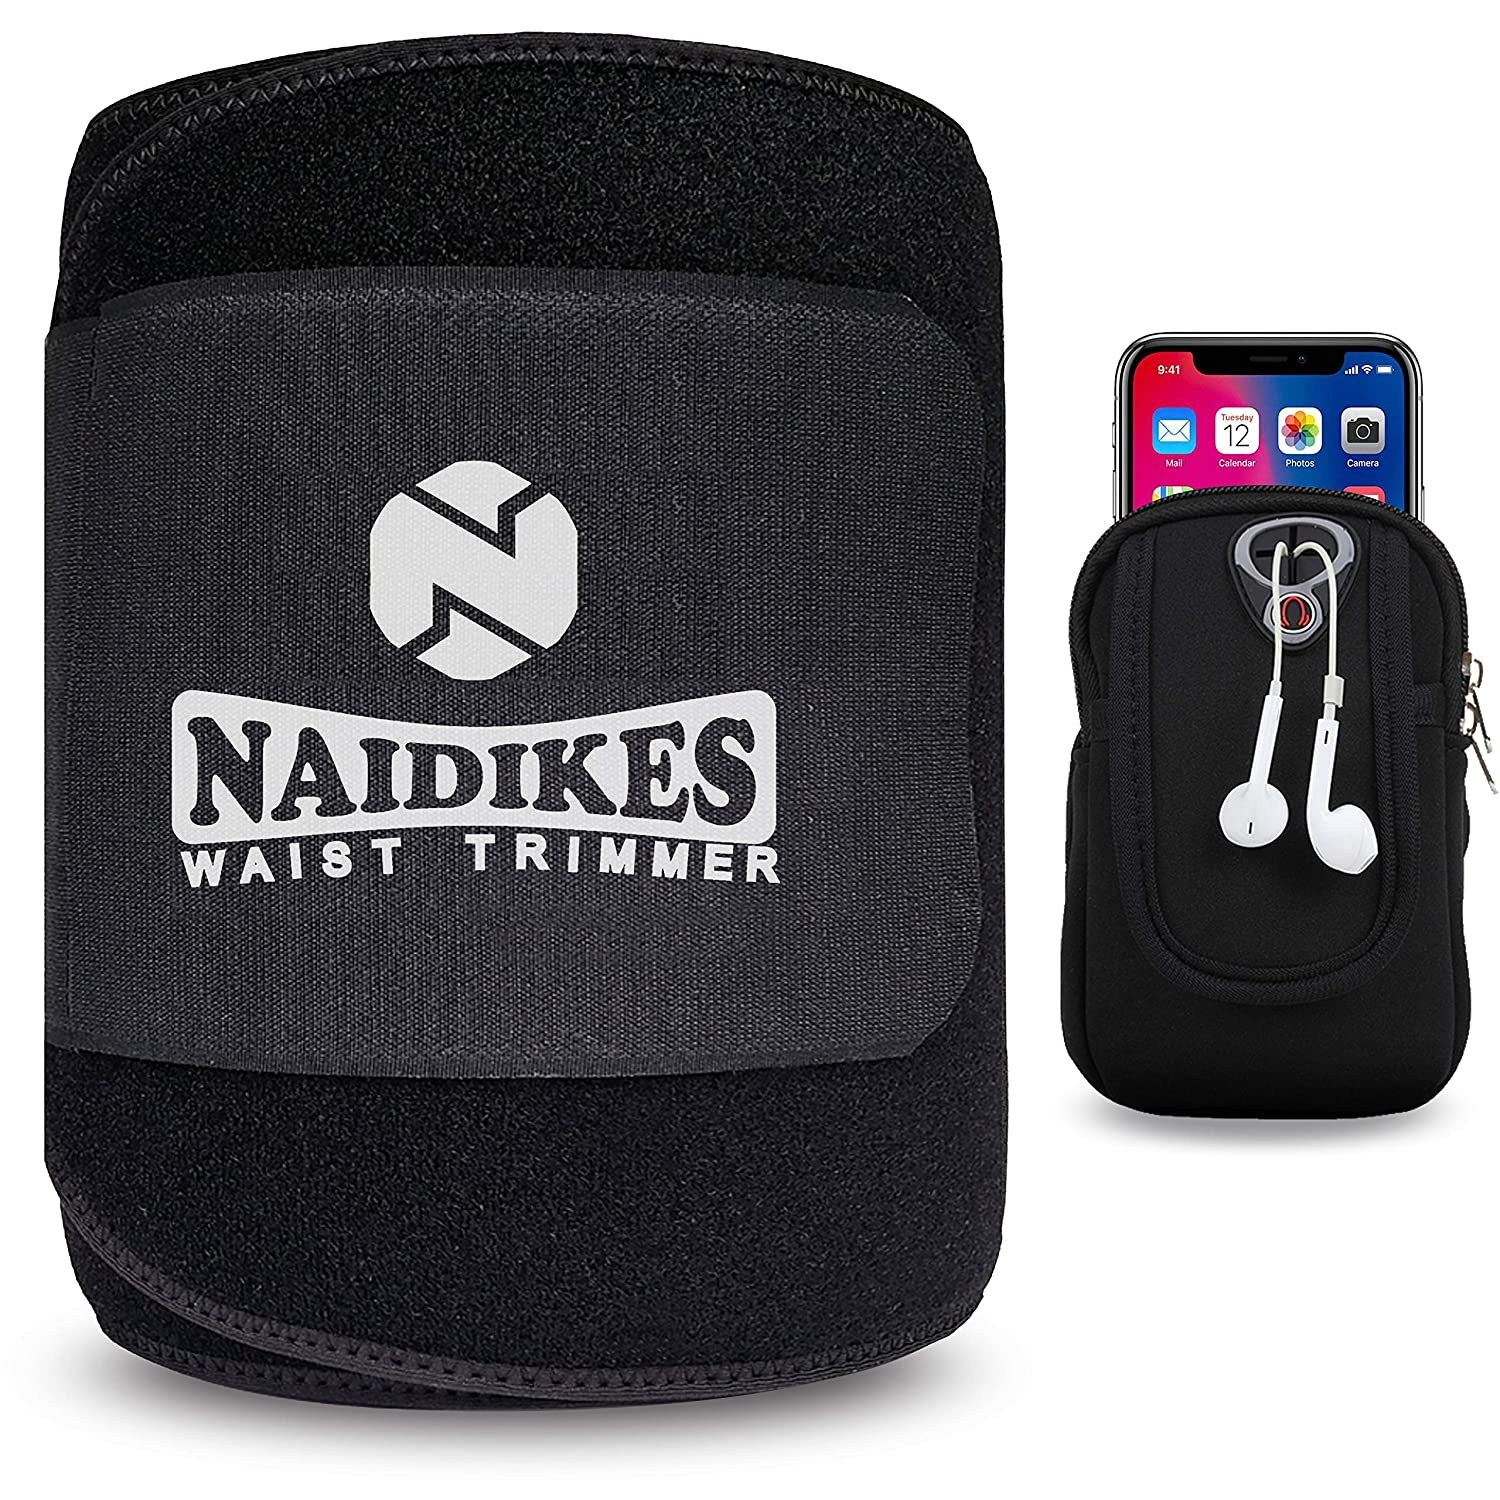 NAIDIKES Waist Trainer Belt for Men Women, Waist Trimmer Belt, Adjustable Lumbar Support for Running Fitness Workout Low Back Support and Pain Relief Includes Extra Arm Bag